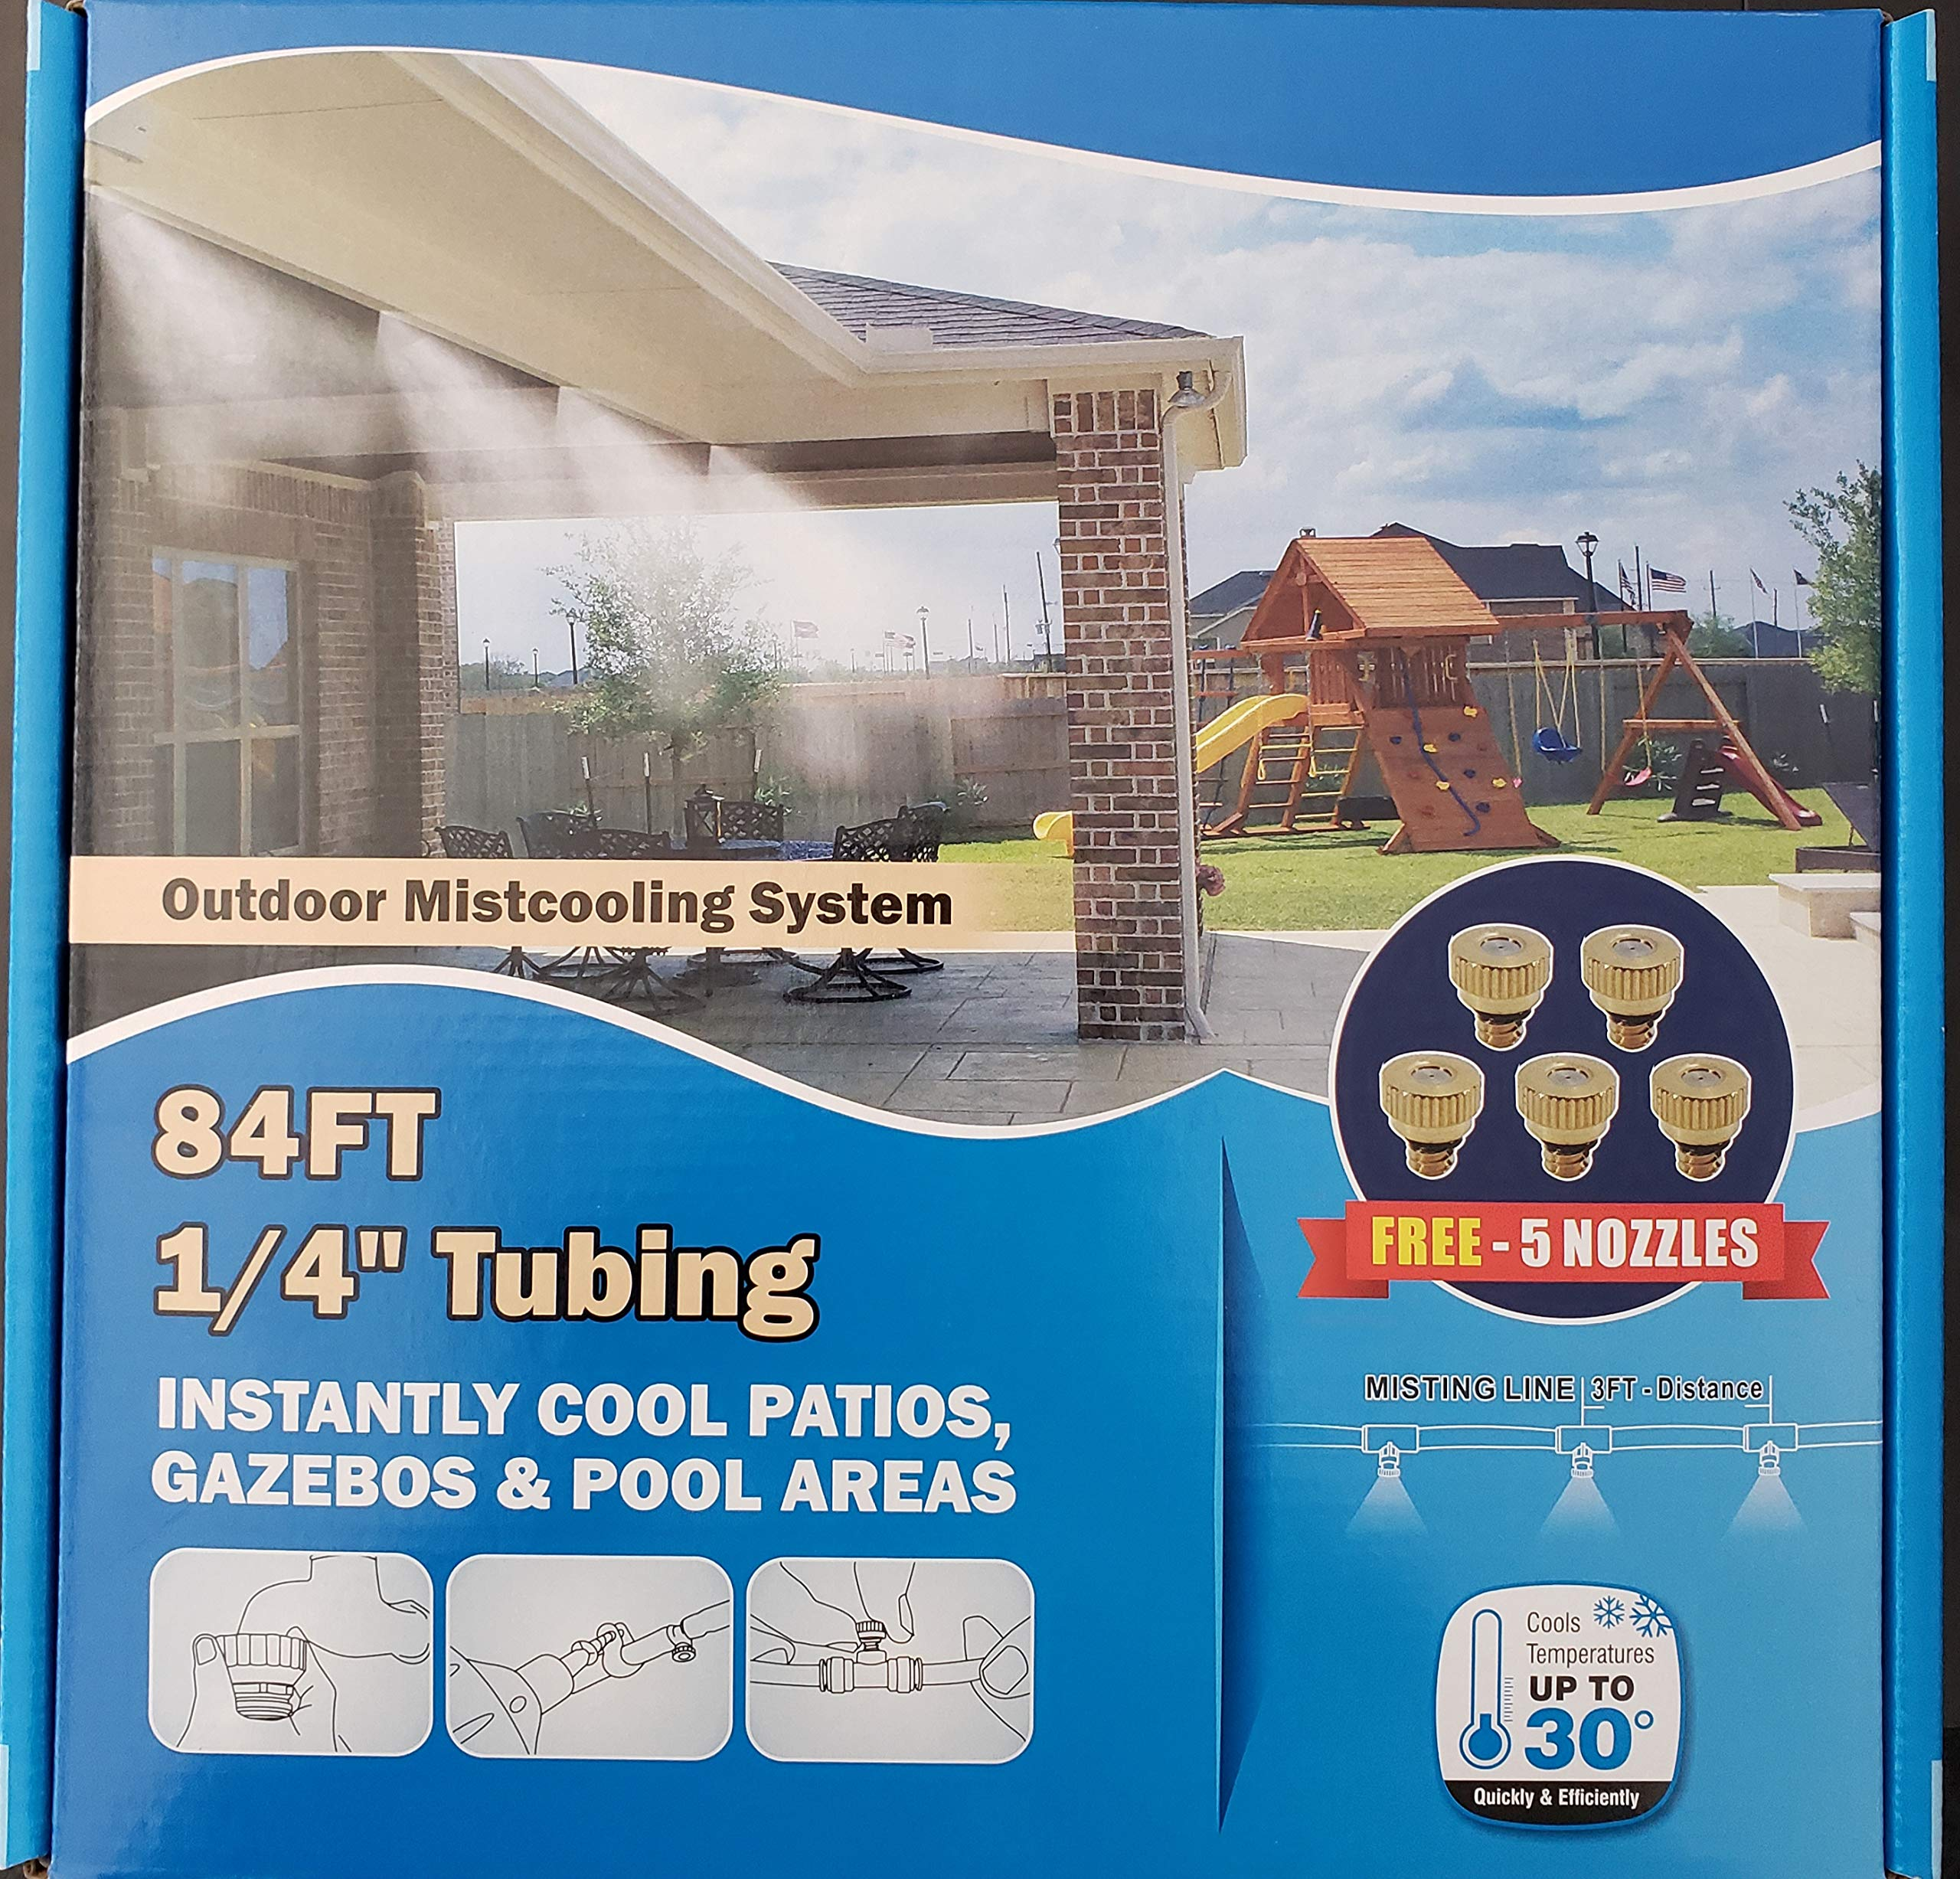 Hydrobreeze Outdoor Cooling System 84 Ft 1/4'' Beige Tubing - 24 Nozzles System by Hydrobreeze